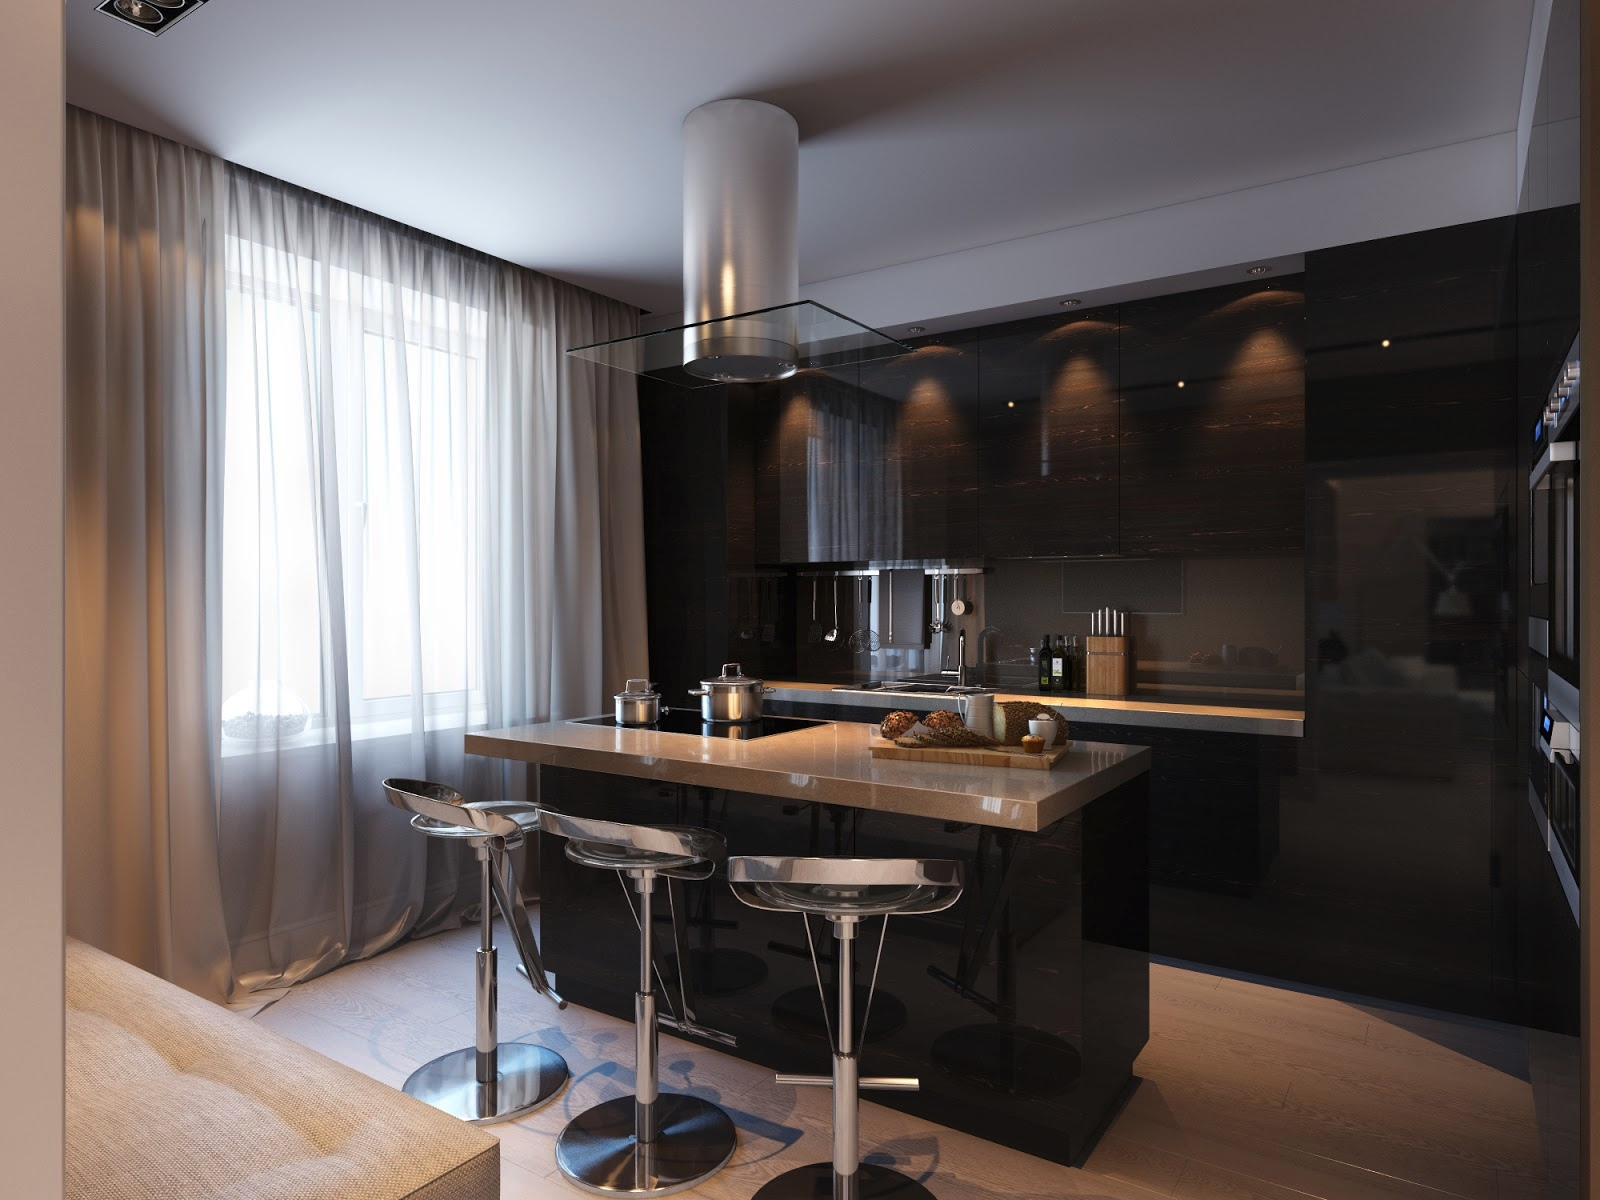 Minimalist kitchen with black color